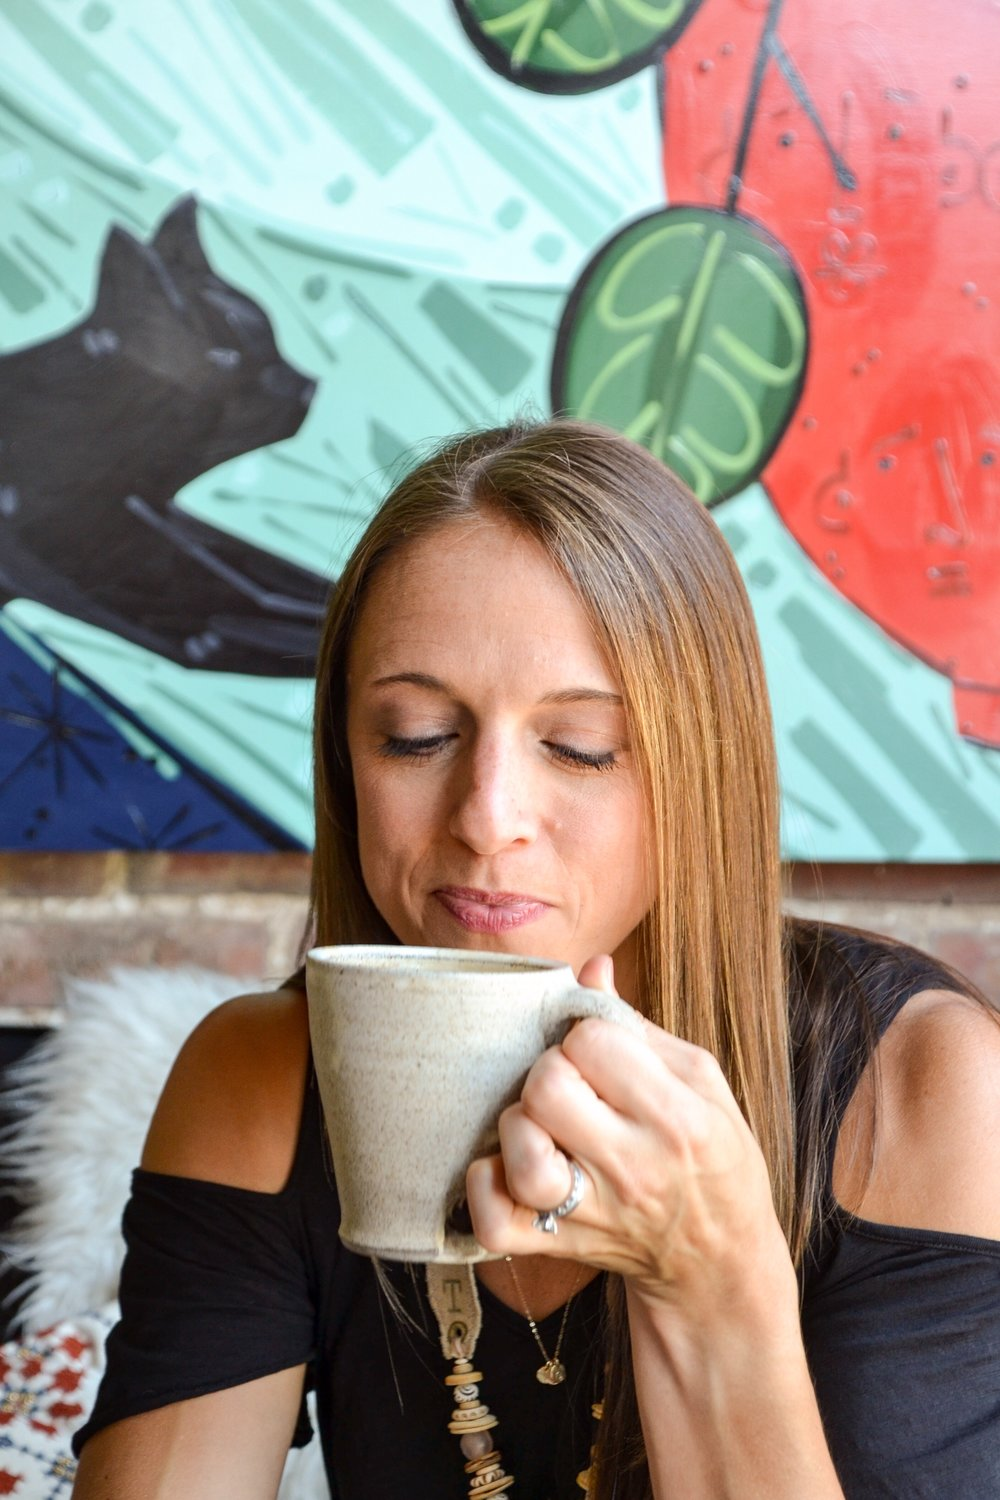 Capture with Coffee shoot for Shana of  Handstand Happiness . She's another awesome Greenville friend and fellow coffee lover!  Check out more of our collaboration photos at her  blog post .